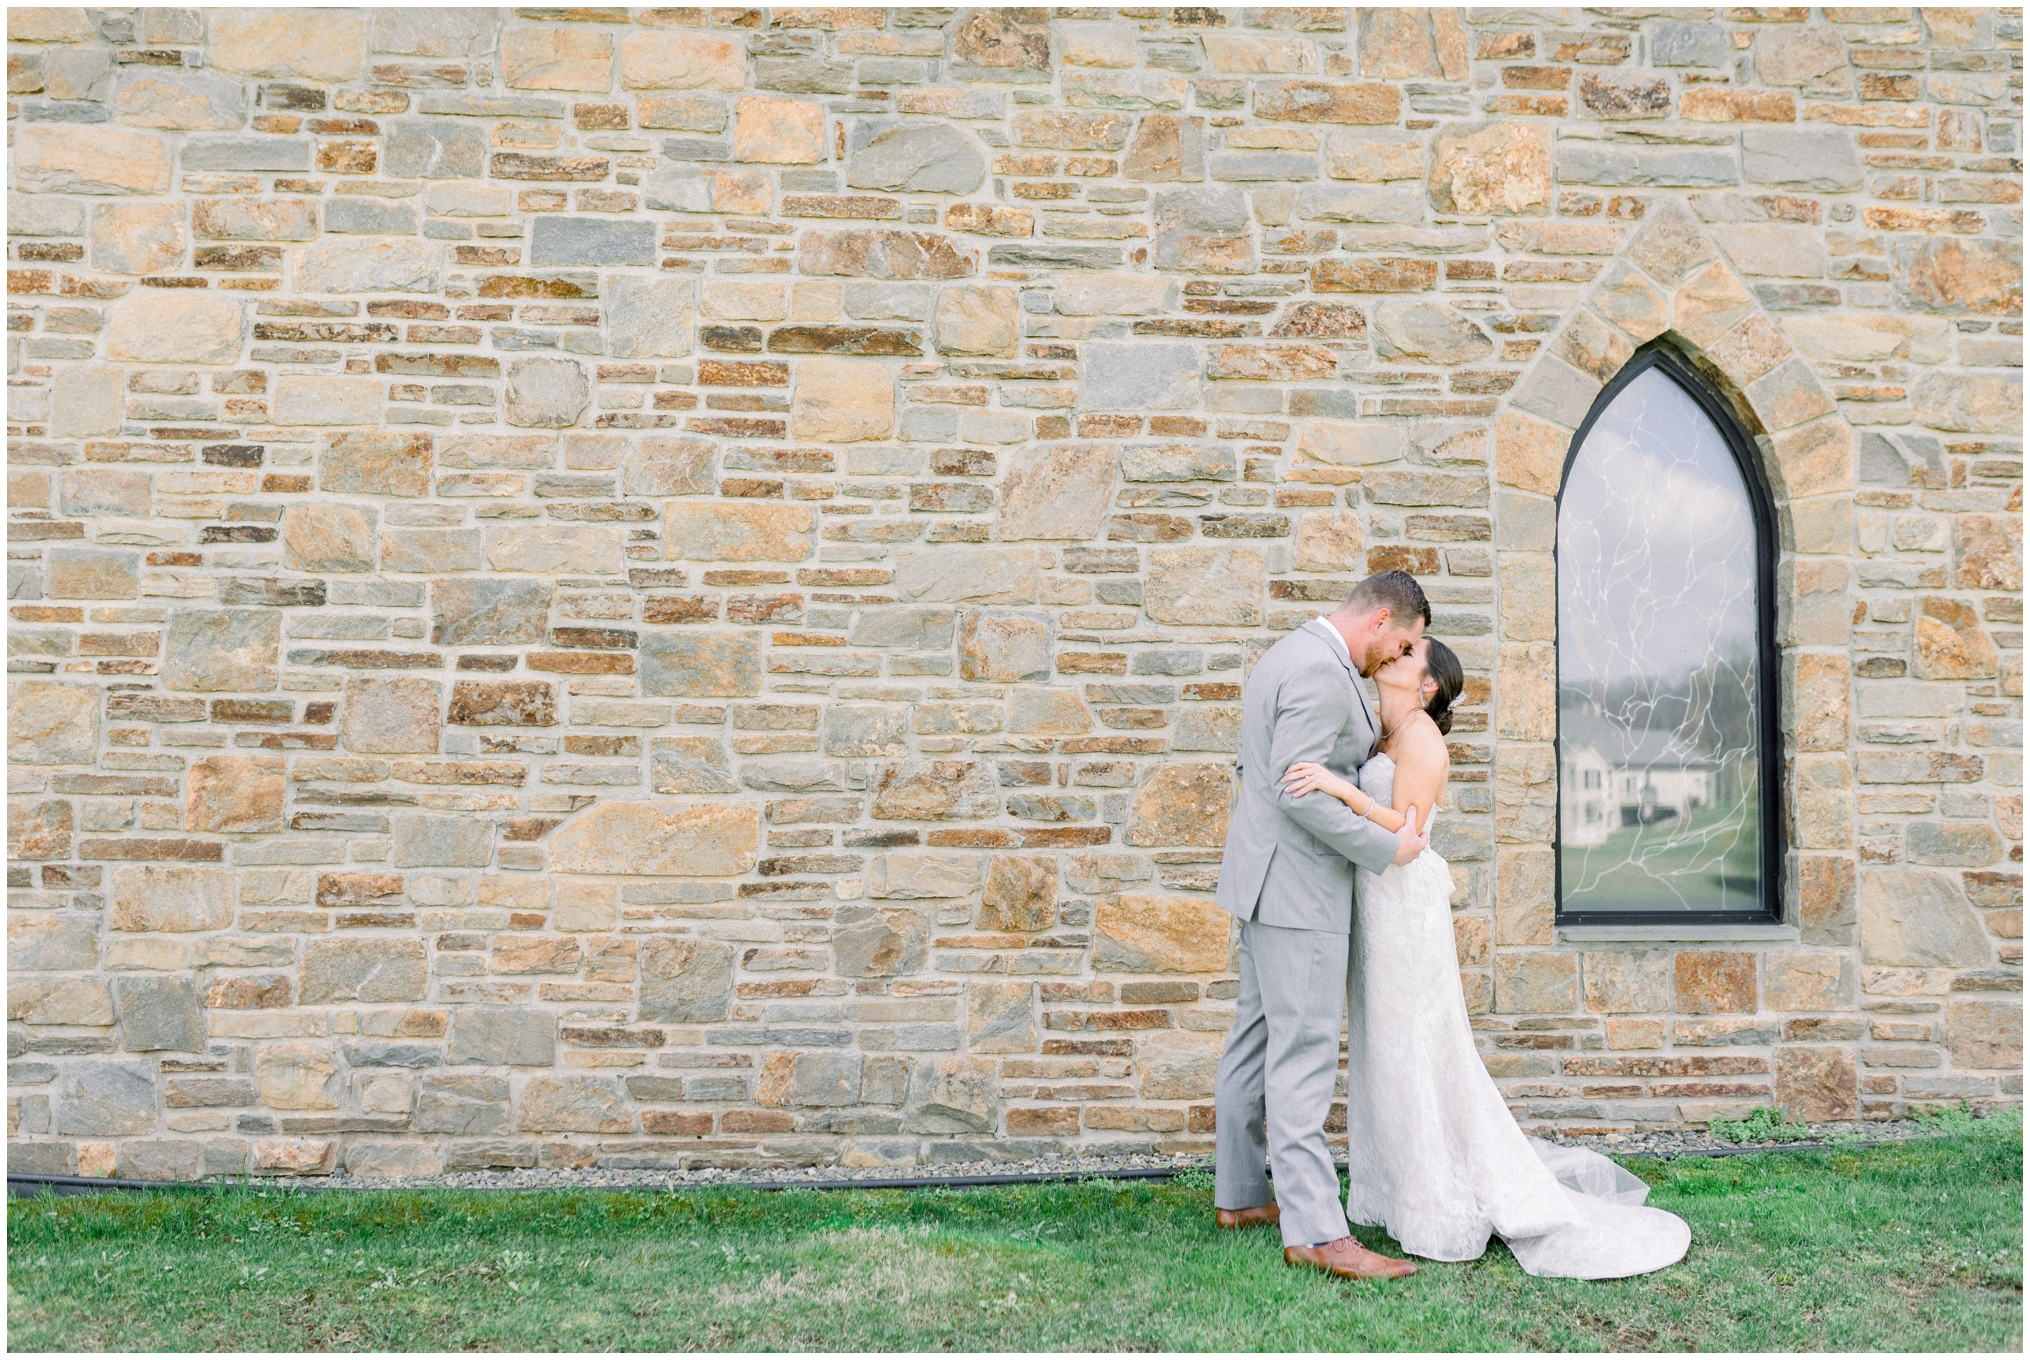 Krista Brackin Photography | April Wedding at The Carriage House at Rockwood Park_0038.jpg